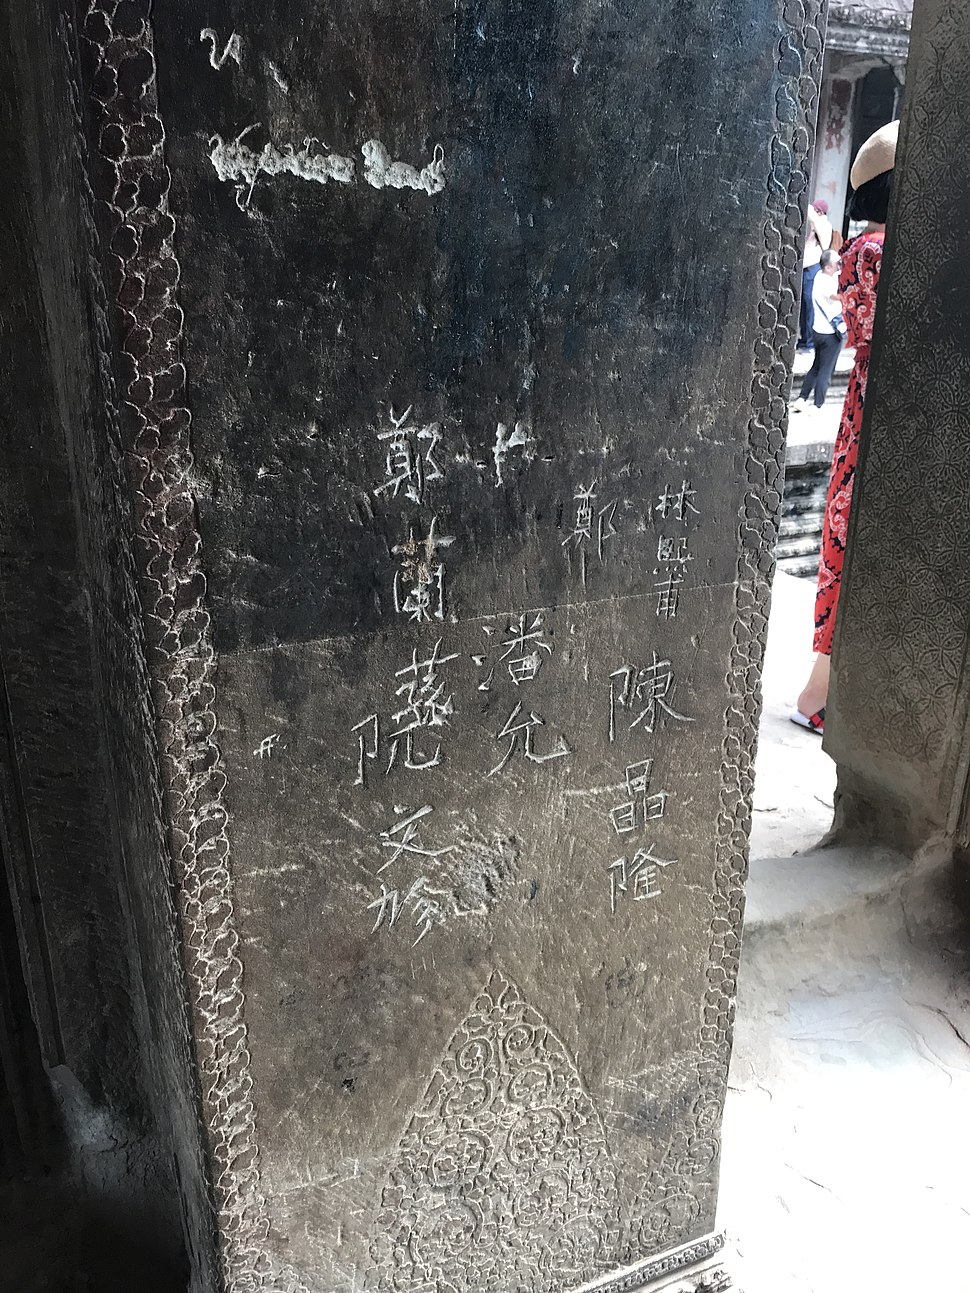 Carved grafitti in Angkor Wat left by Chinese tourists